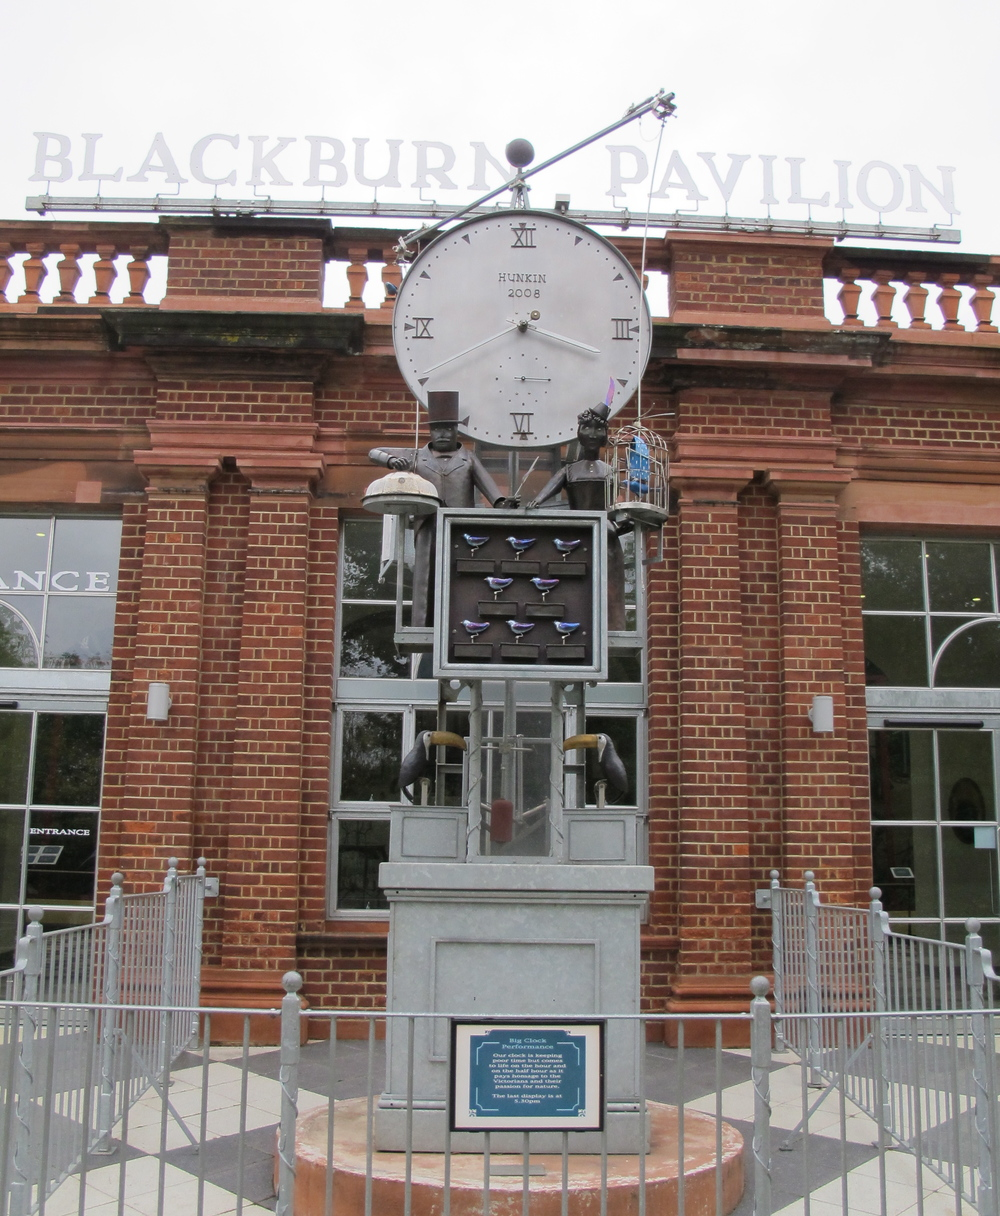 Here's the mechanical bird clock in front of the zoo's Blackburn Pavilion. You have to check out the video below that we shot when the clock struck 4 p.m. We missed the very beginning but stick with it to the end, when more things happen.